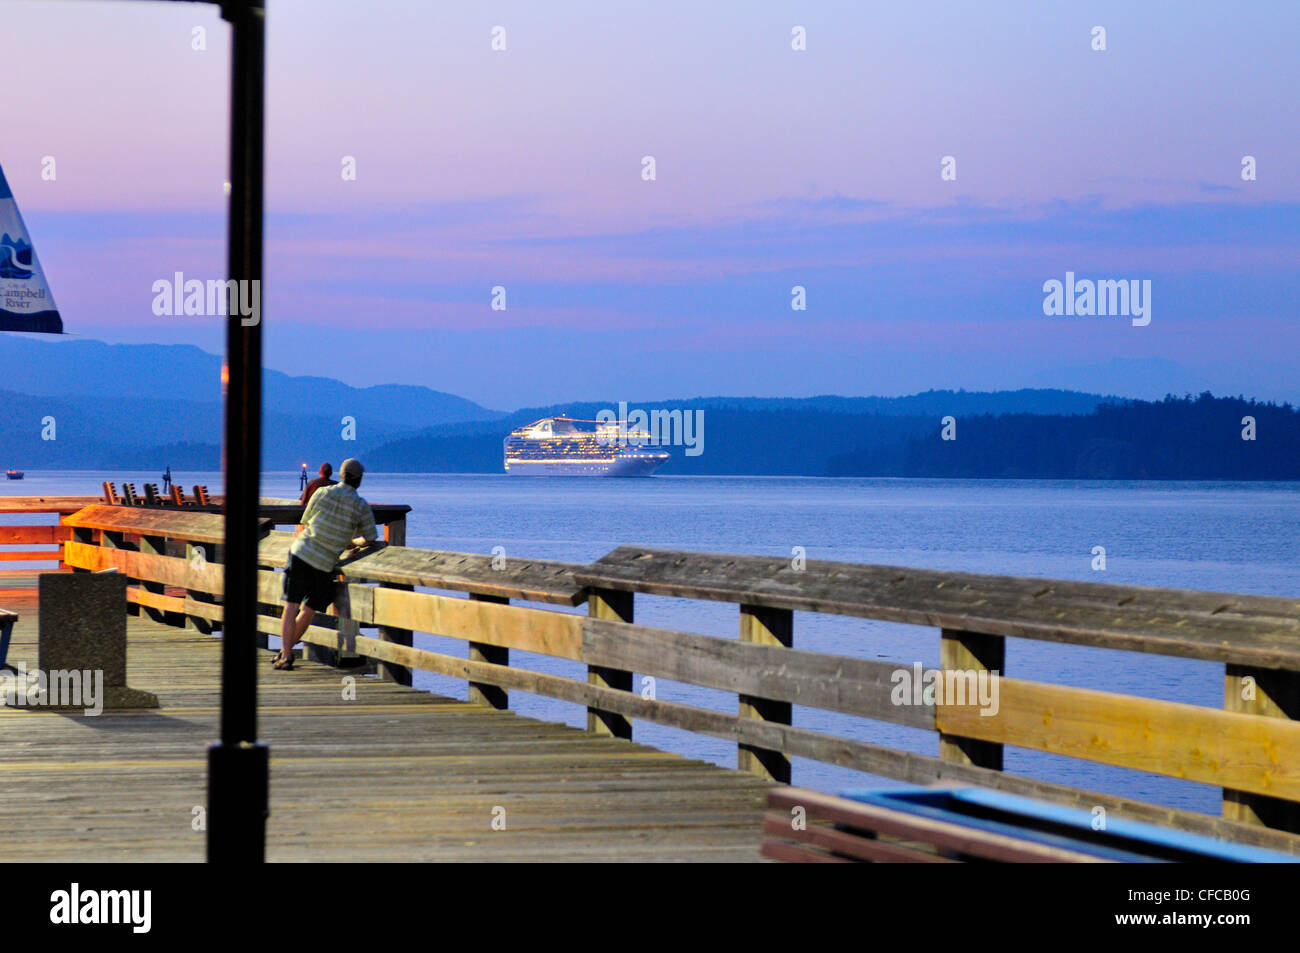 Cruise Ship Passing By The Fishing Pier At Dusk In Campbell River, British  Columbia, Canada